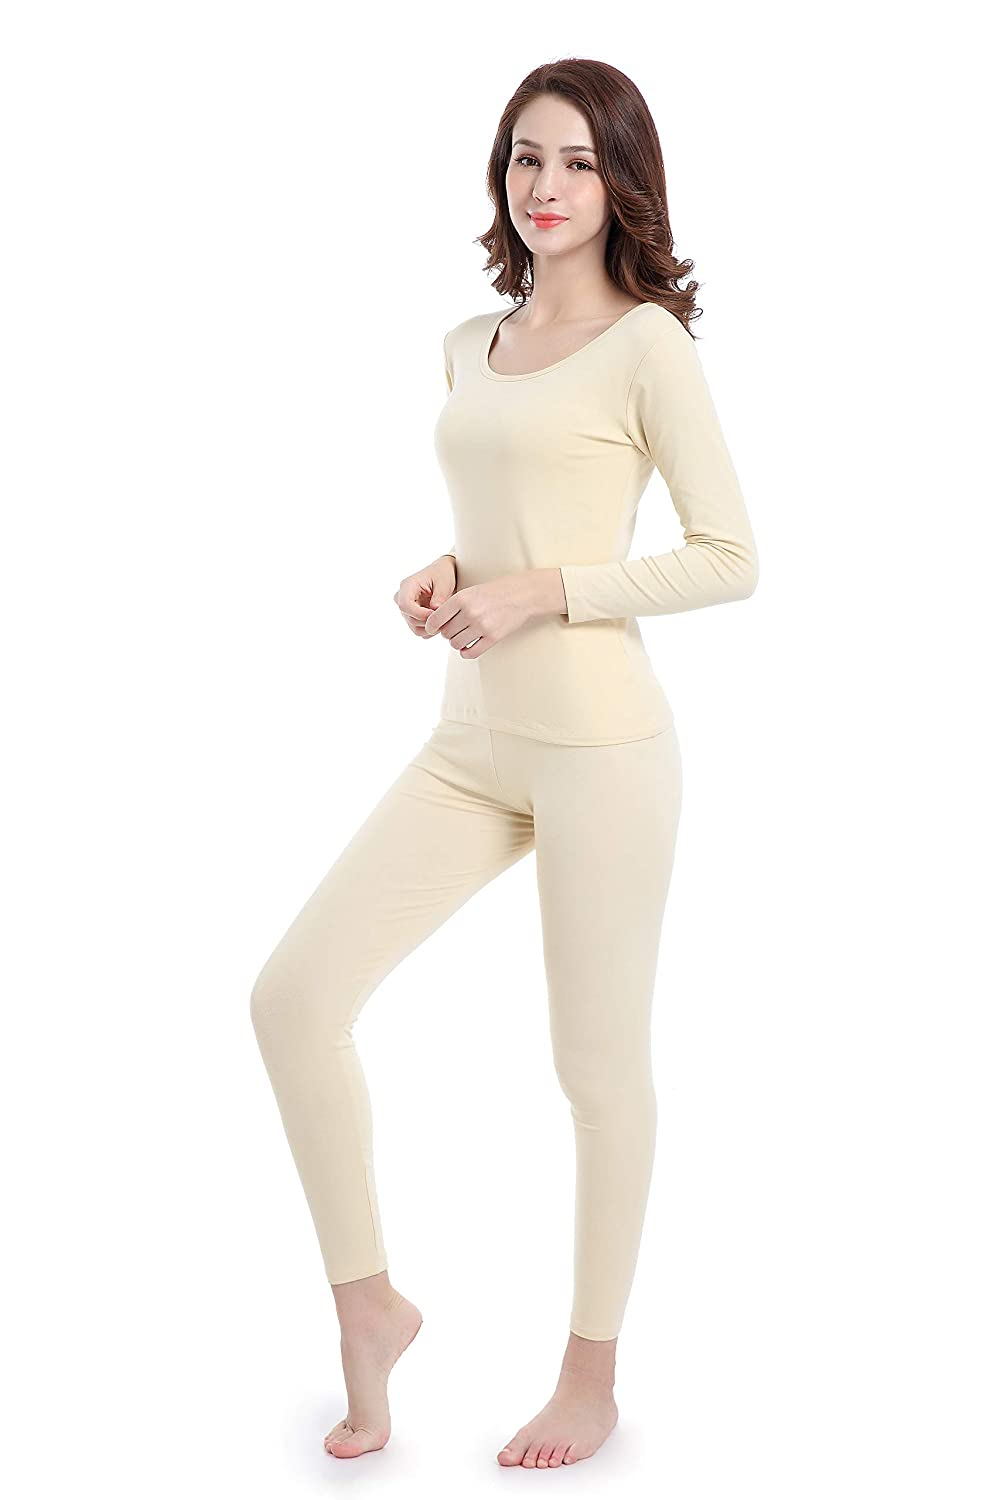 Women Stretch Thermal Underwear Set Soft Scoop Neck Base Layer Thin Long Johns